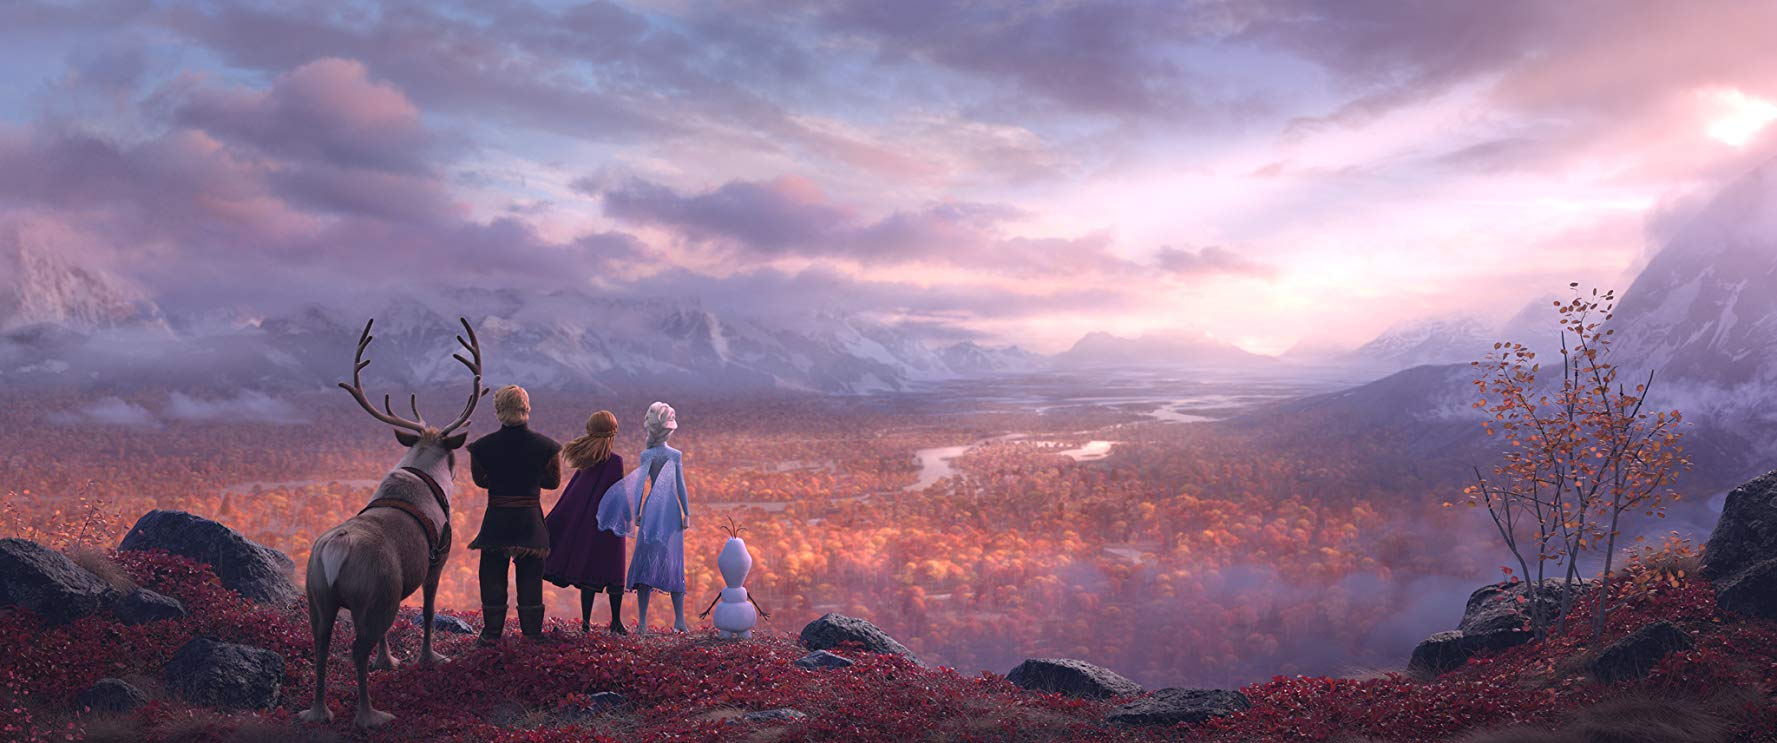 Frozen 2 is out on Digital and Blu-Ray!